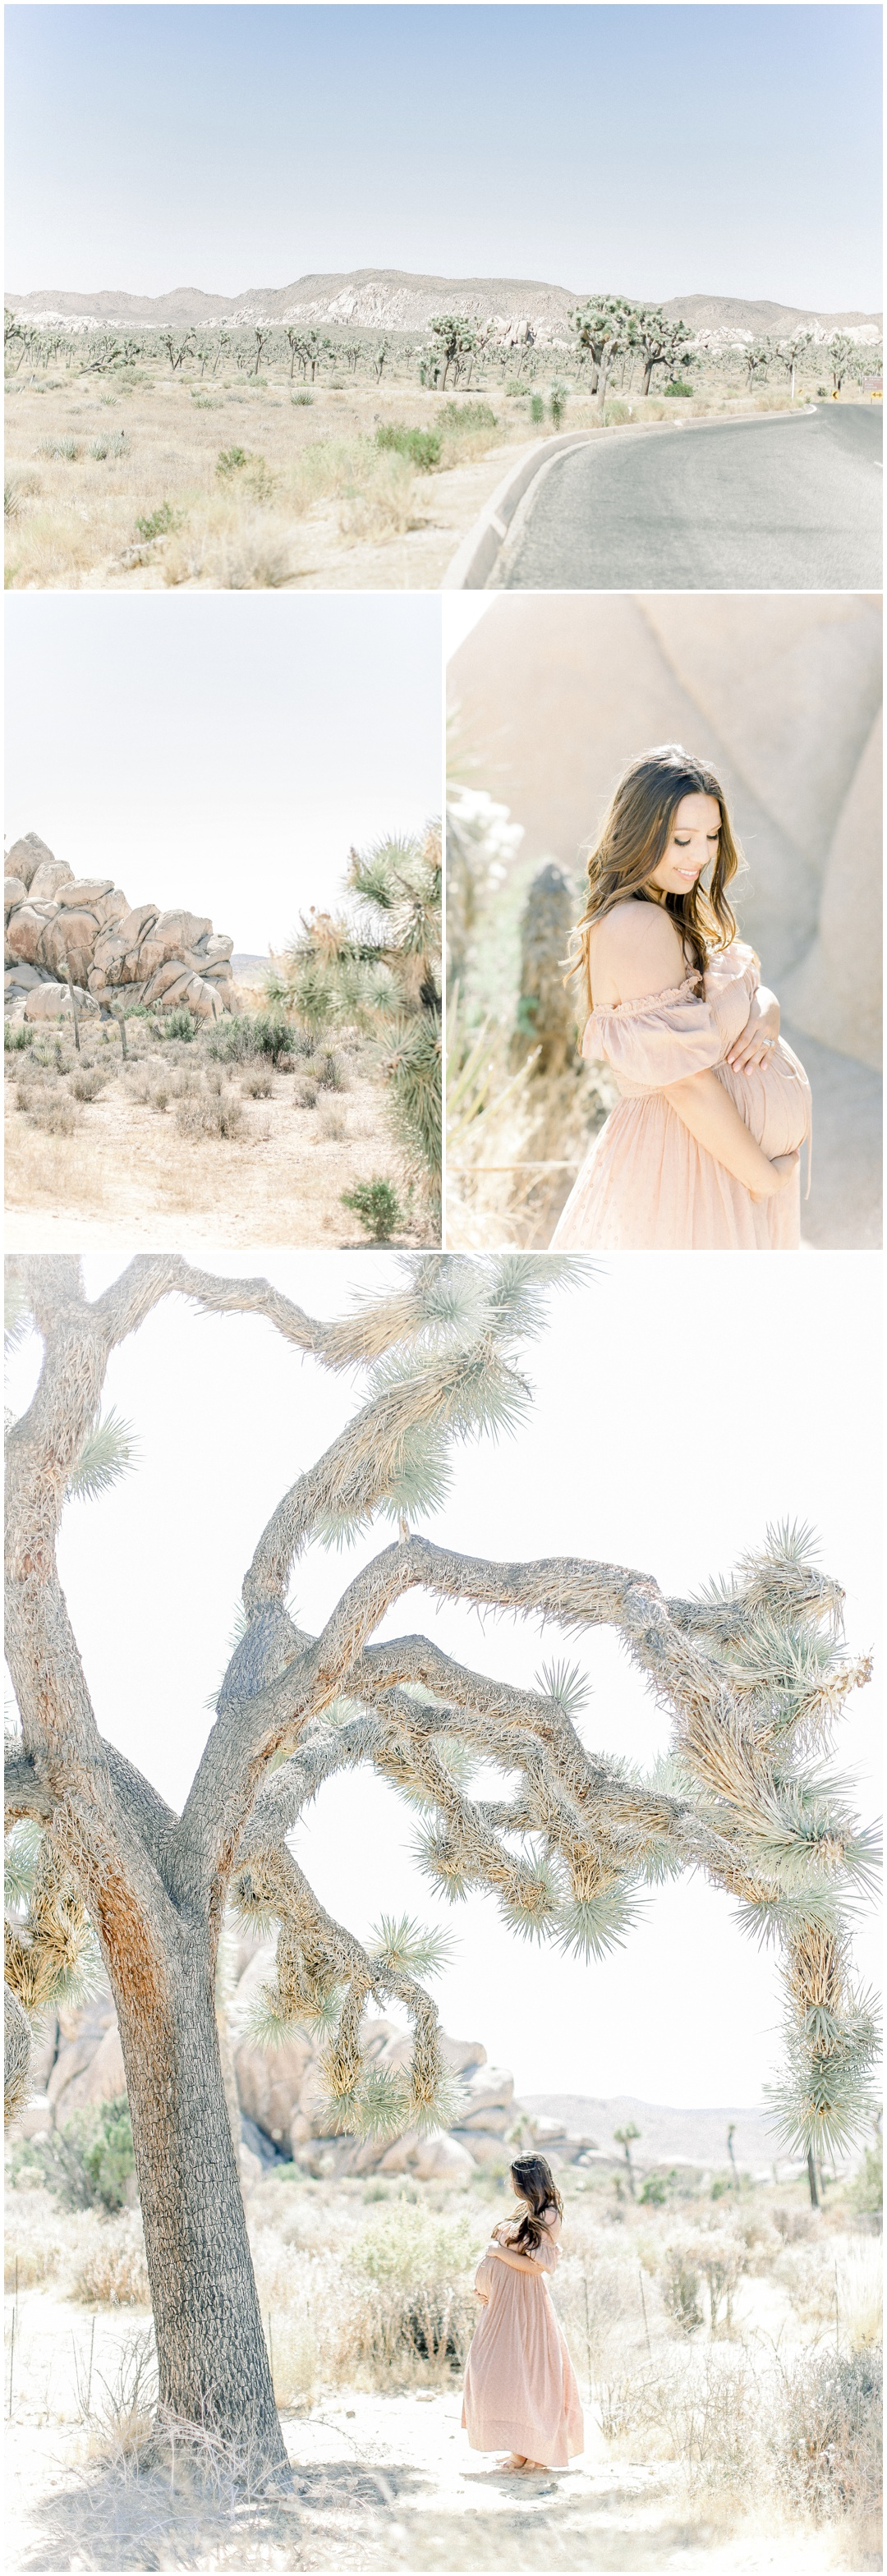 Newport_Beach_Joshua_Tree_Maternity_Photos_Session_Leliani_Hailey_Shane_Hailey_Maternity_Session__4273.jpg